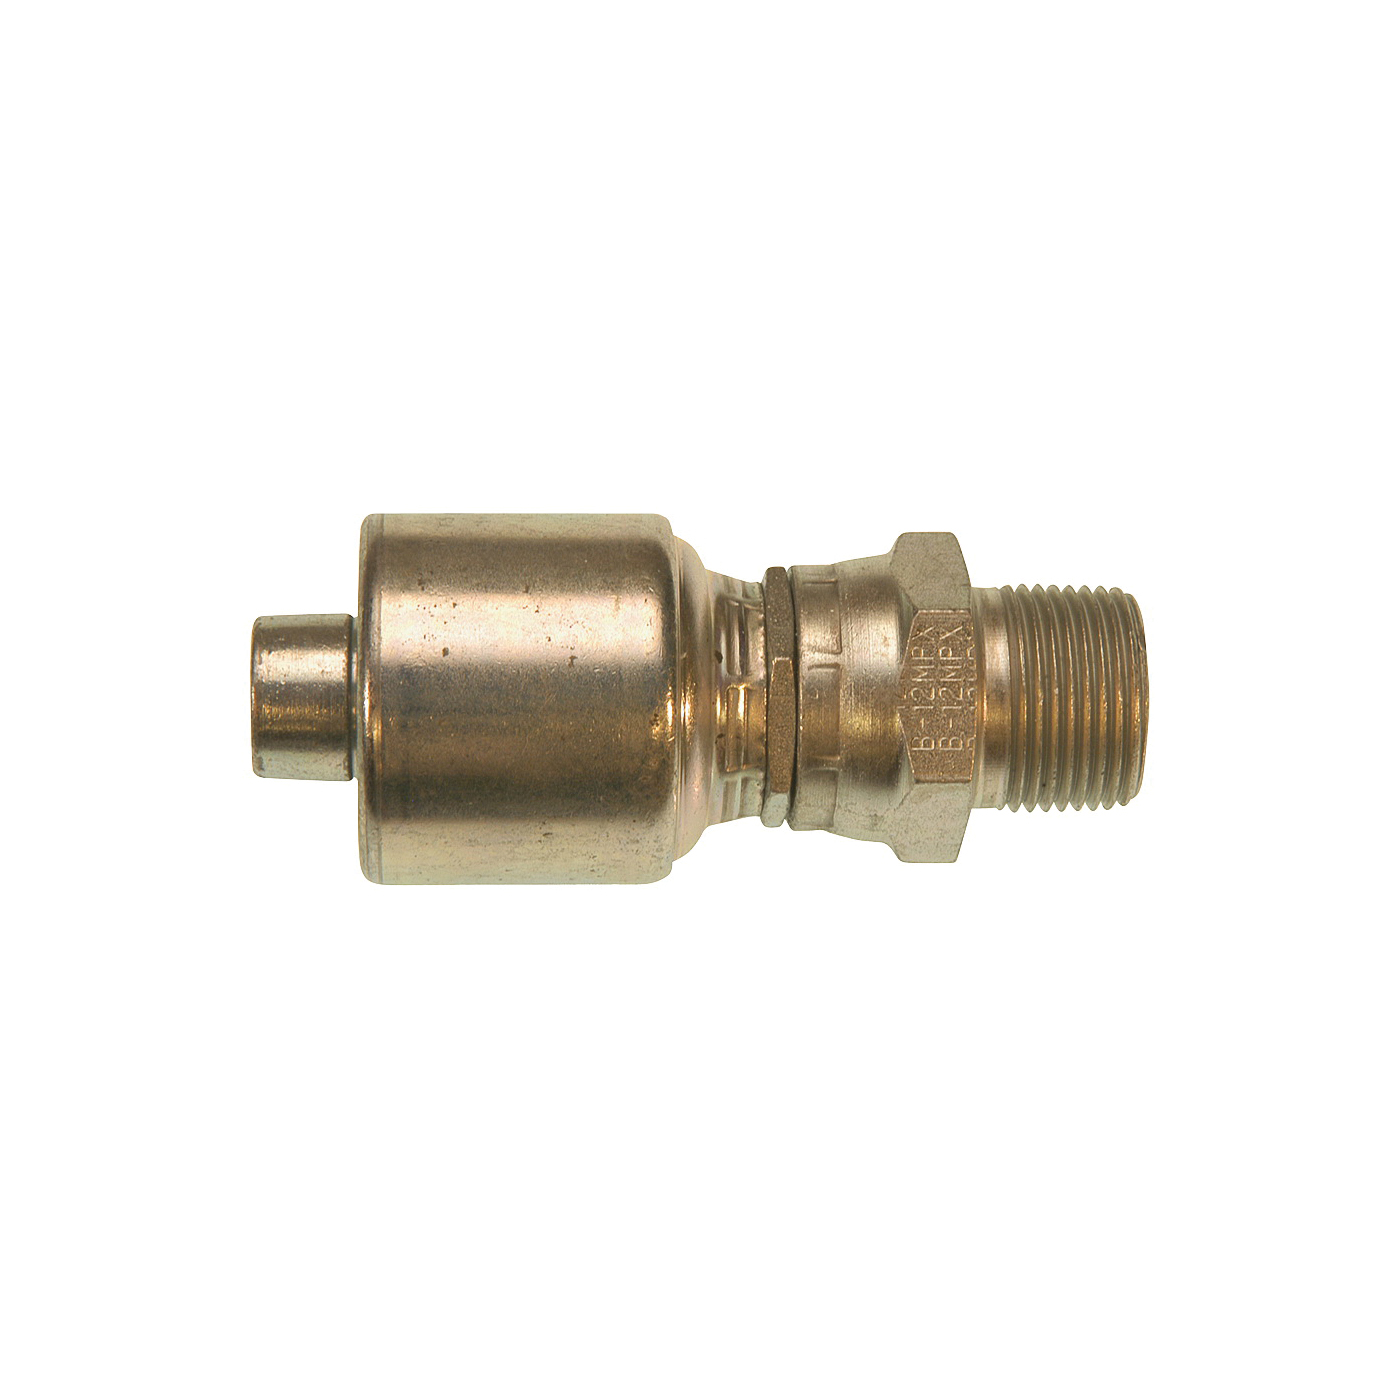 Picture of GATES MegaCrimp G25105-1212 Hose Coupling, 3/4-14, Crimp x NPTF, Straight Angle, Steel, Zinc